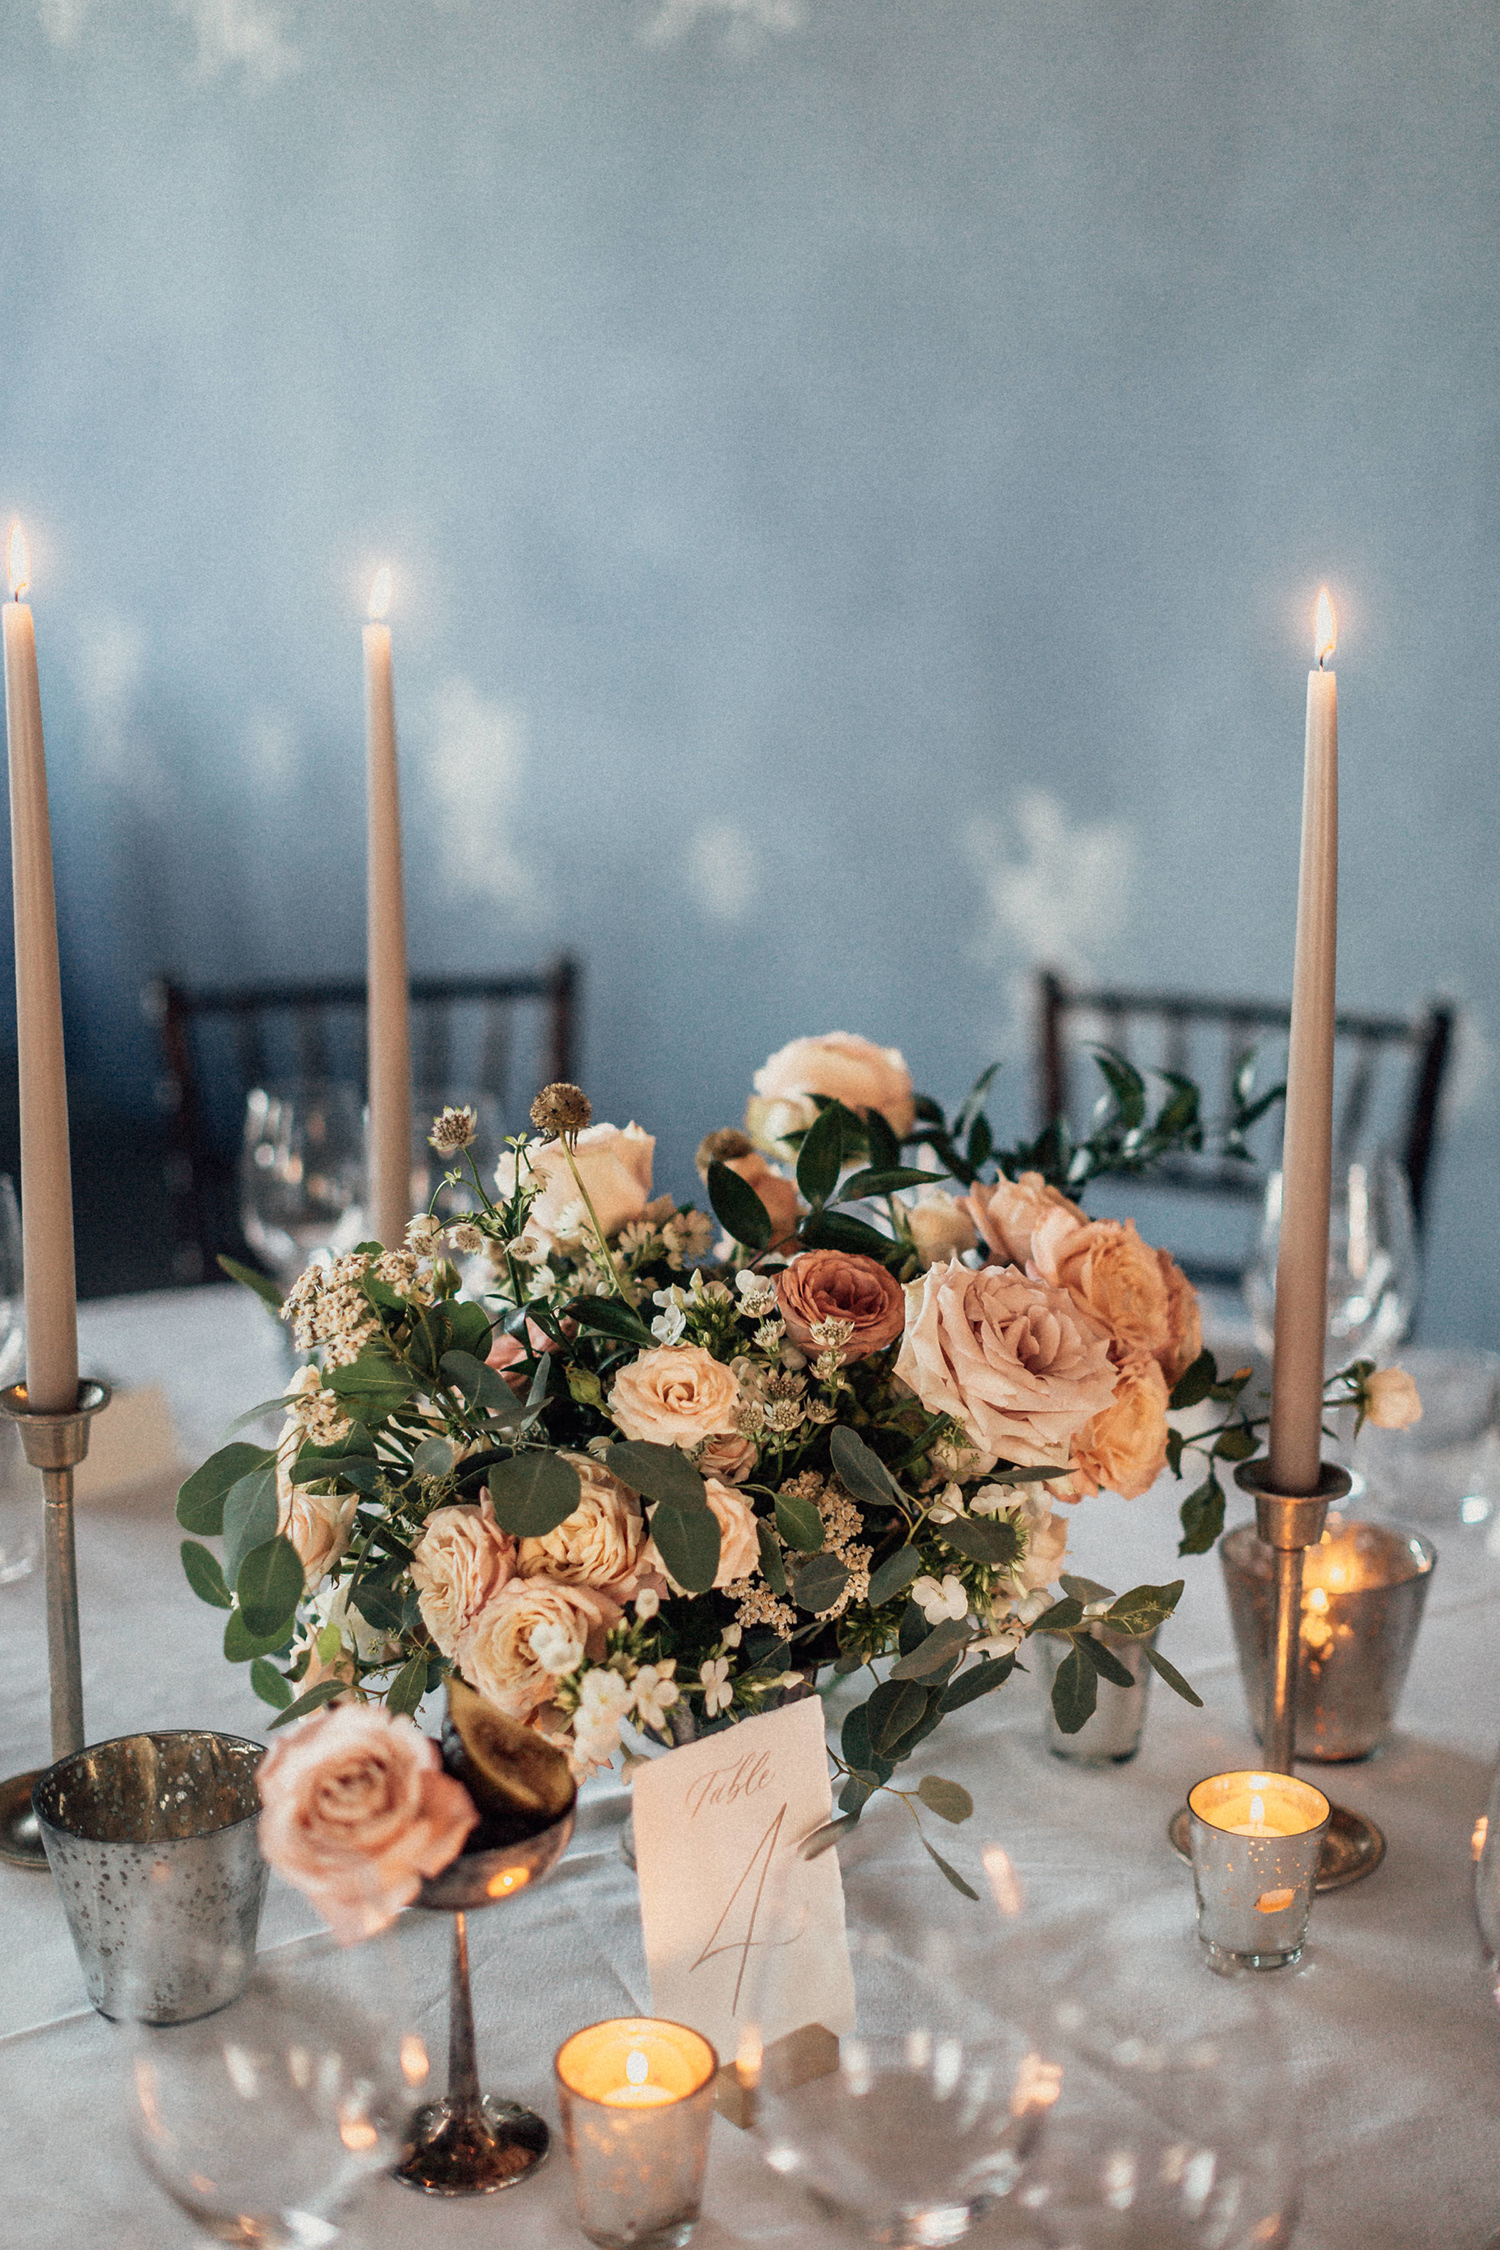 natalie paul wedding floral centerpiece and candles